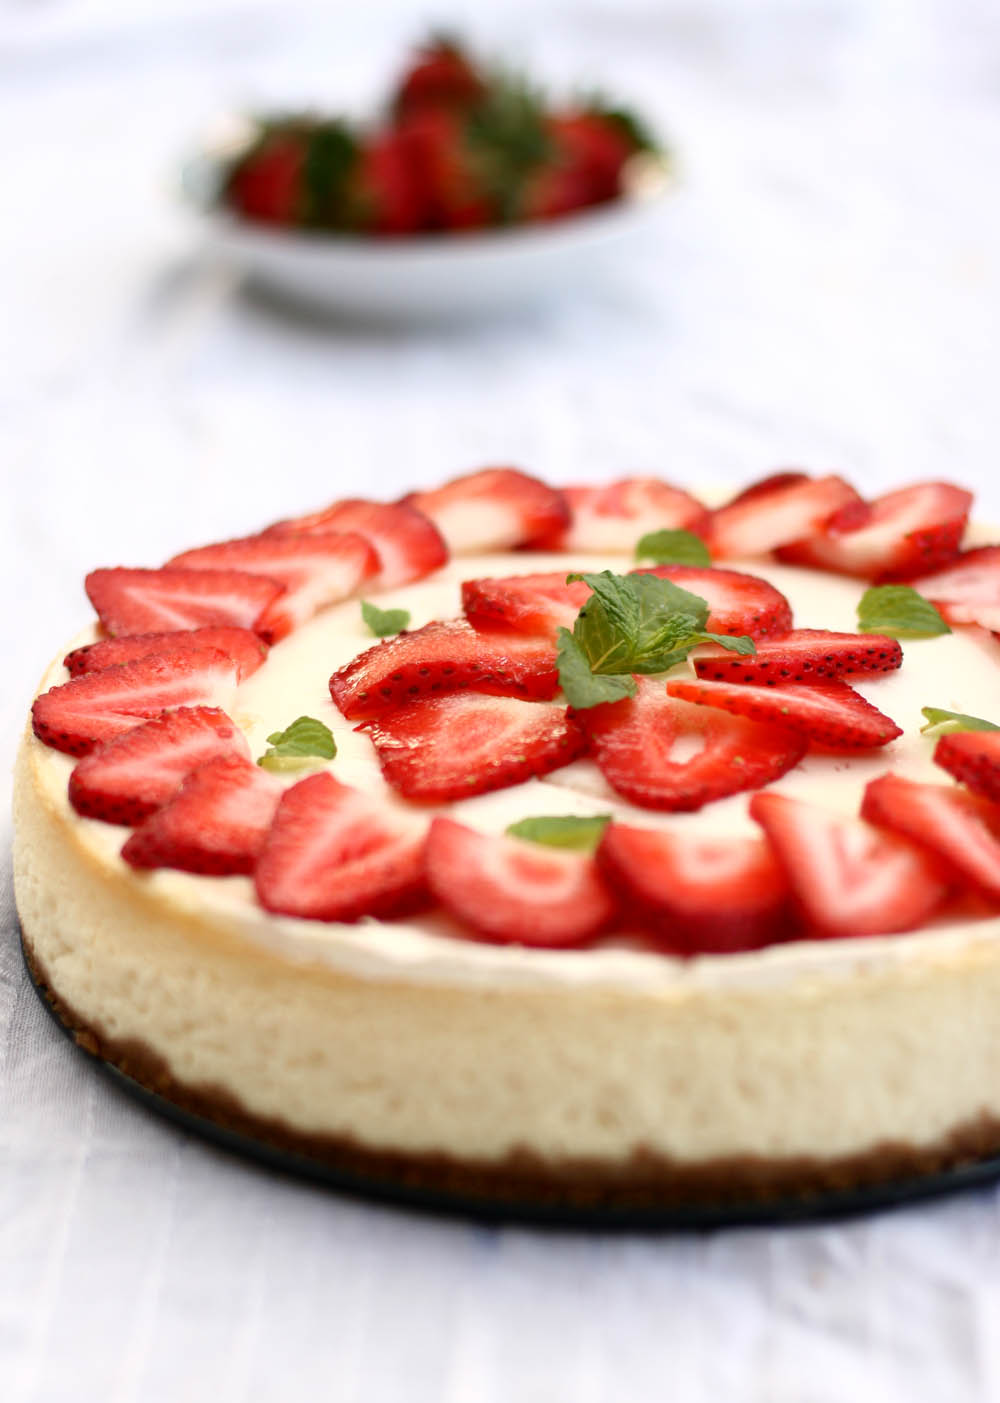 Plain Cheesecake Recipe No Crust